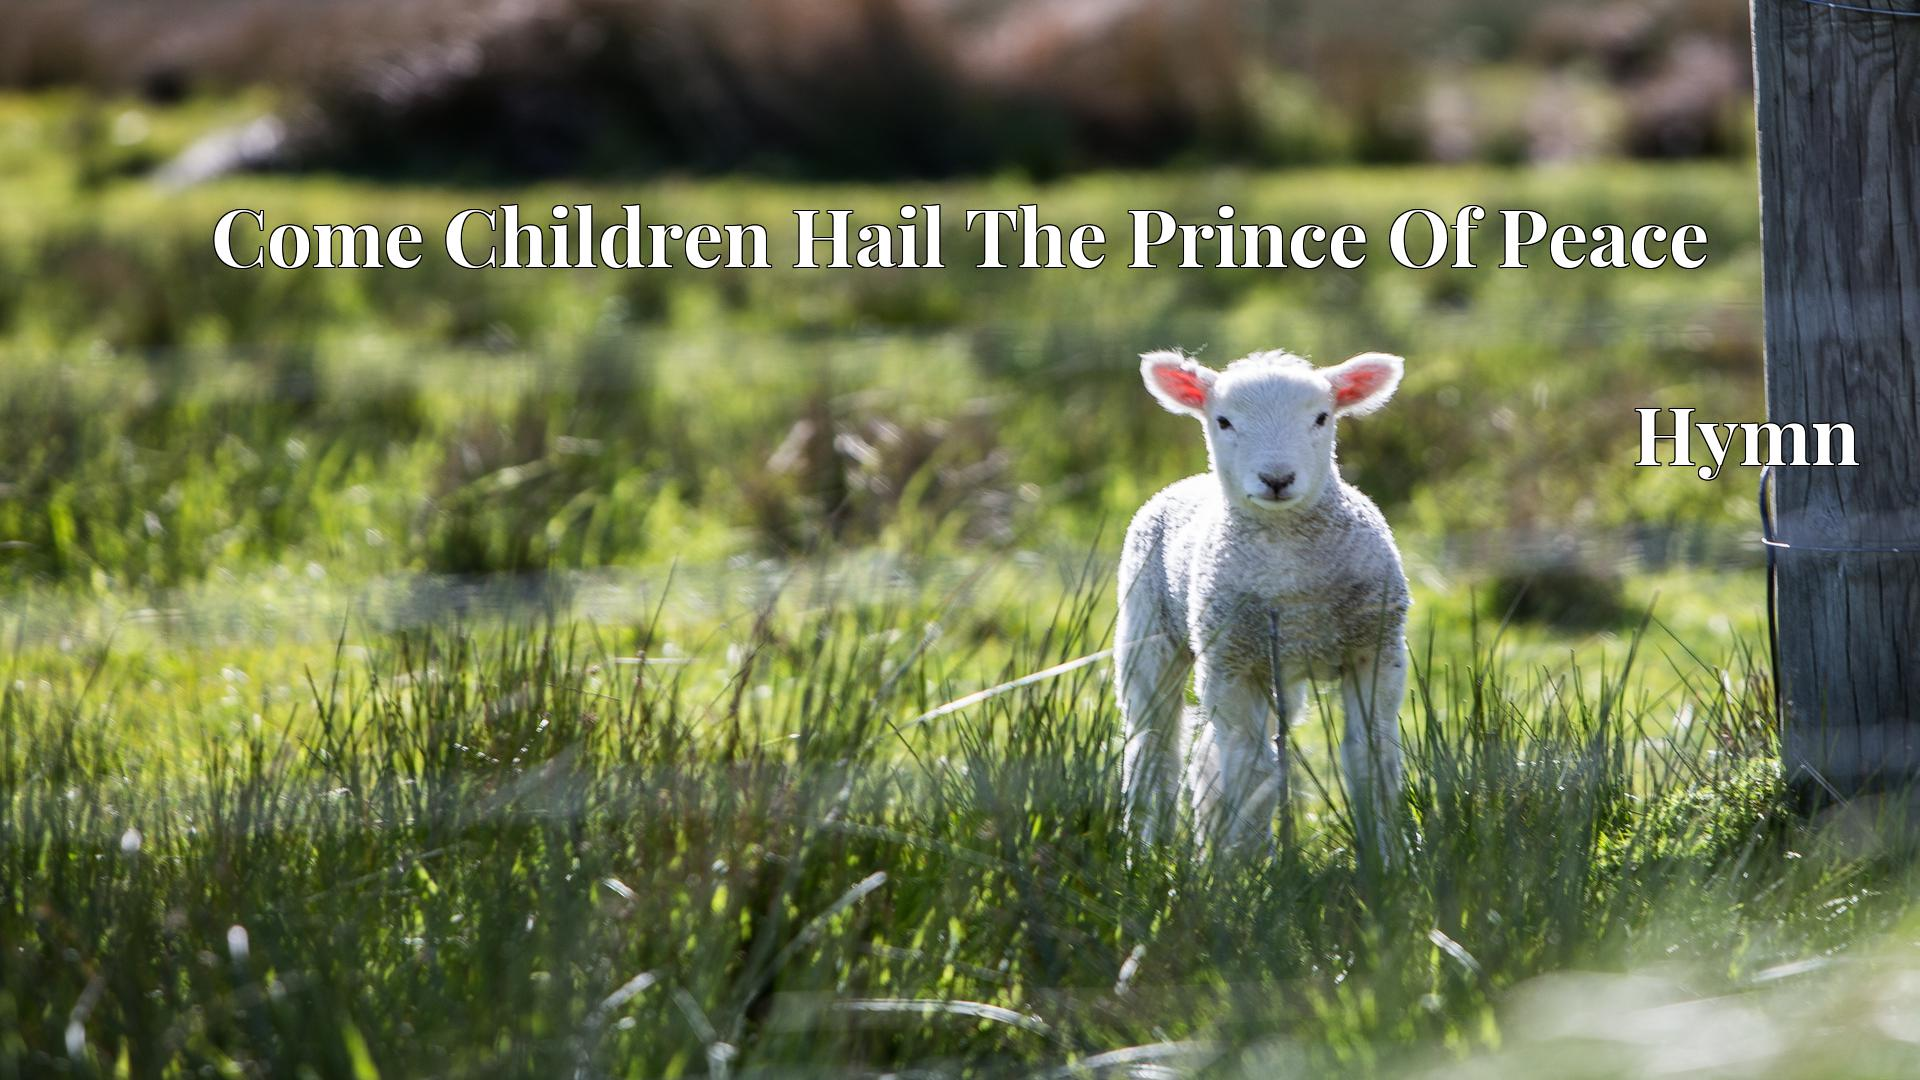 Come Children Hail The Prince Of Peace - Hymn